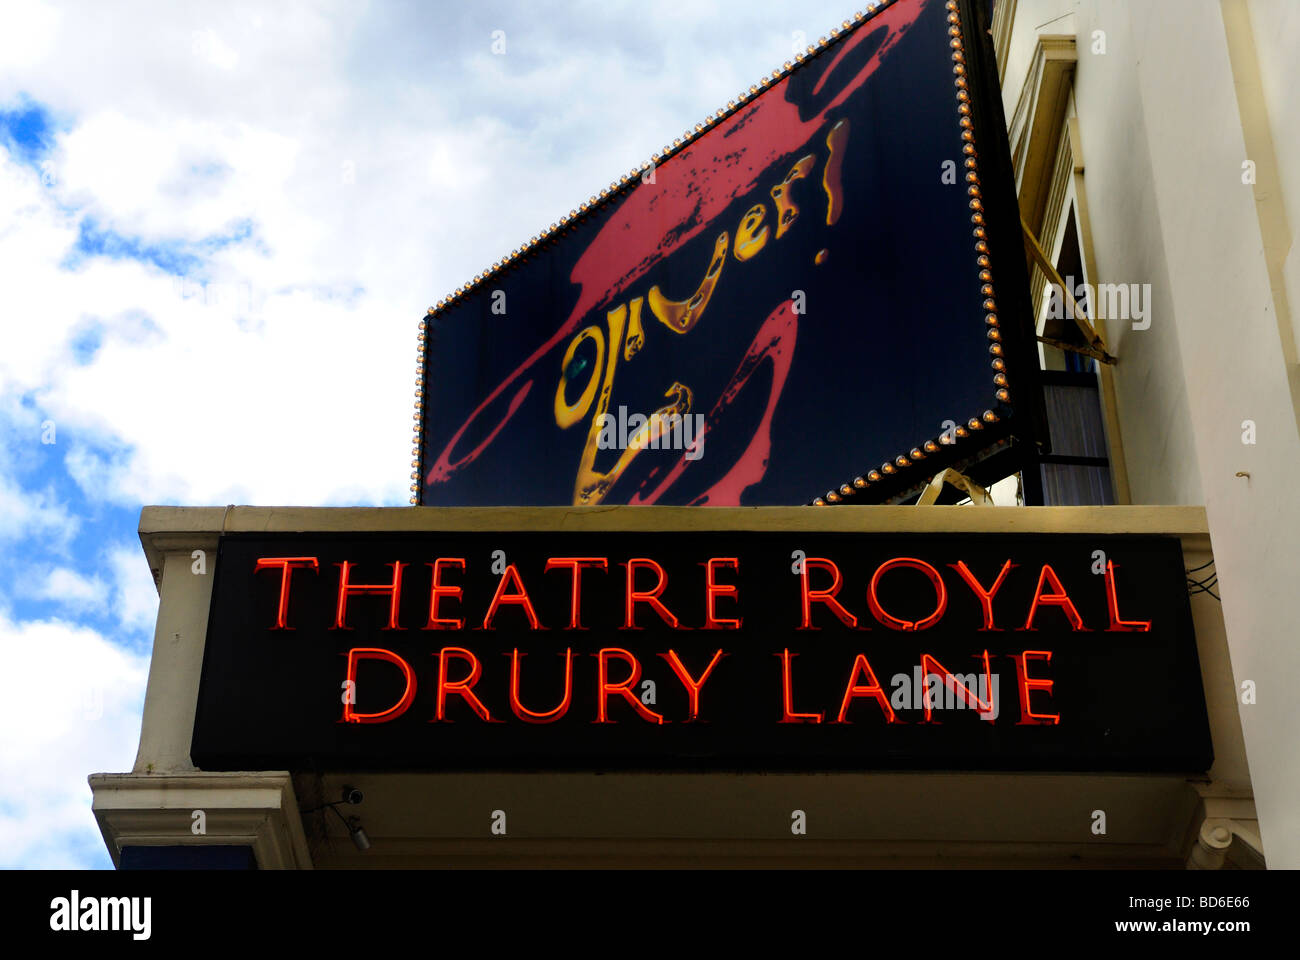 Theatre Royal Drury Lane London Britain July 09 - Stock Image